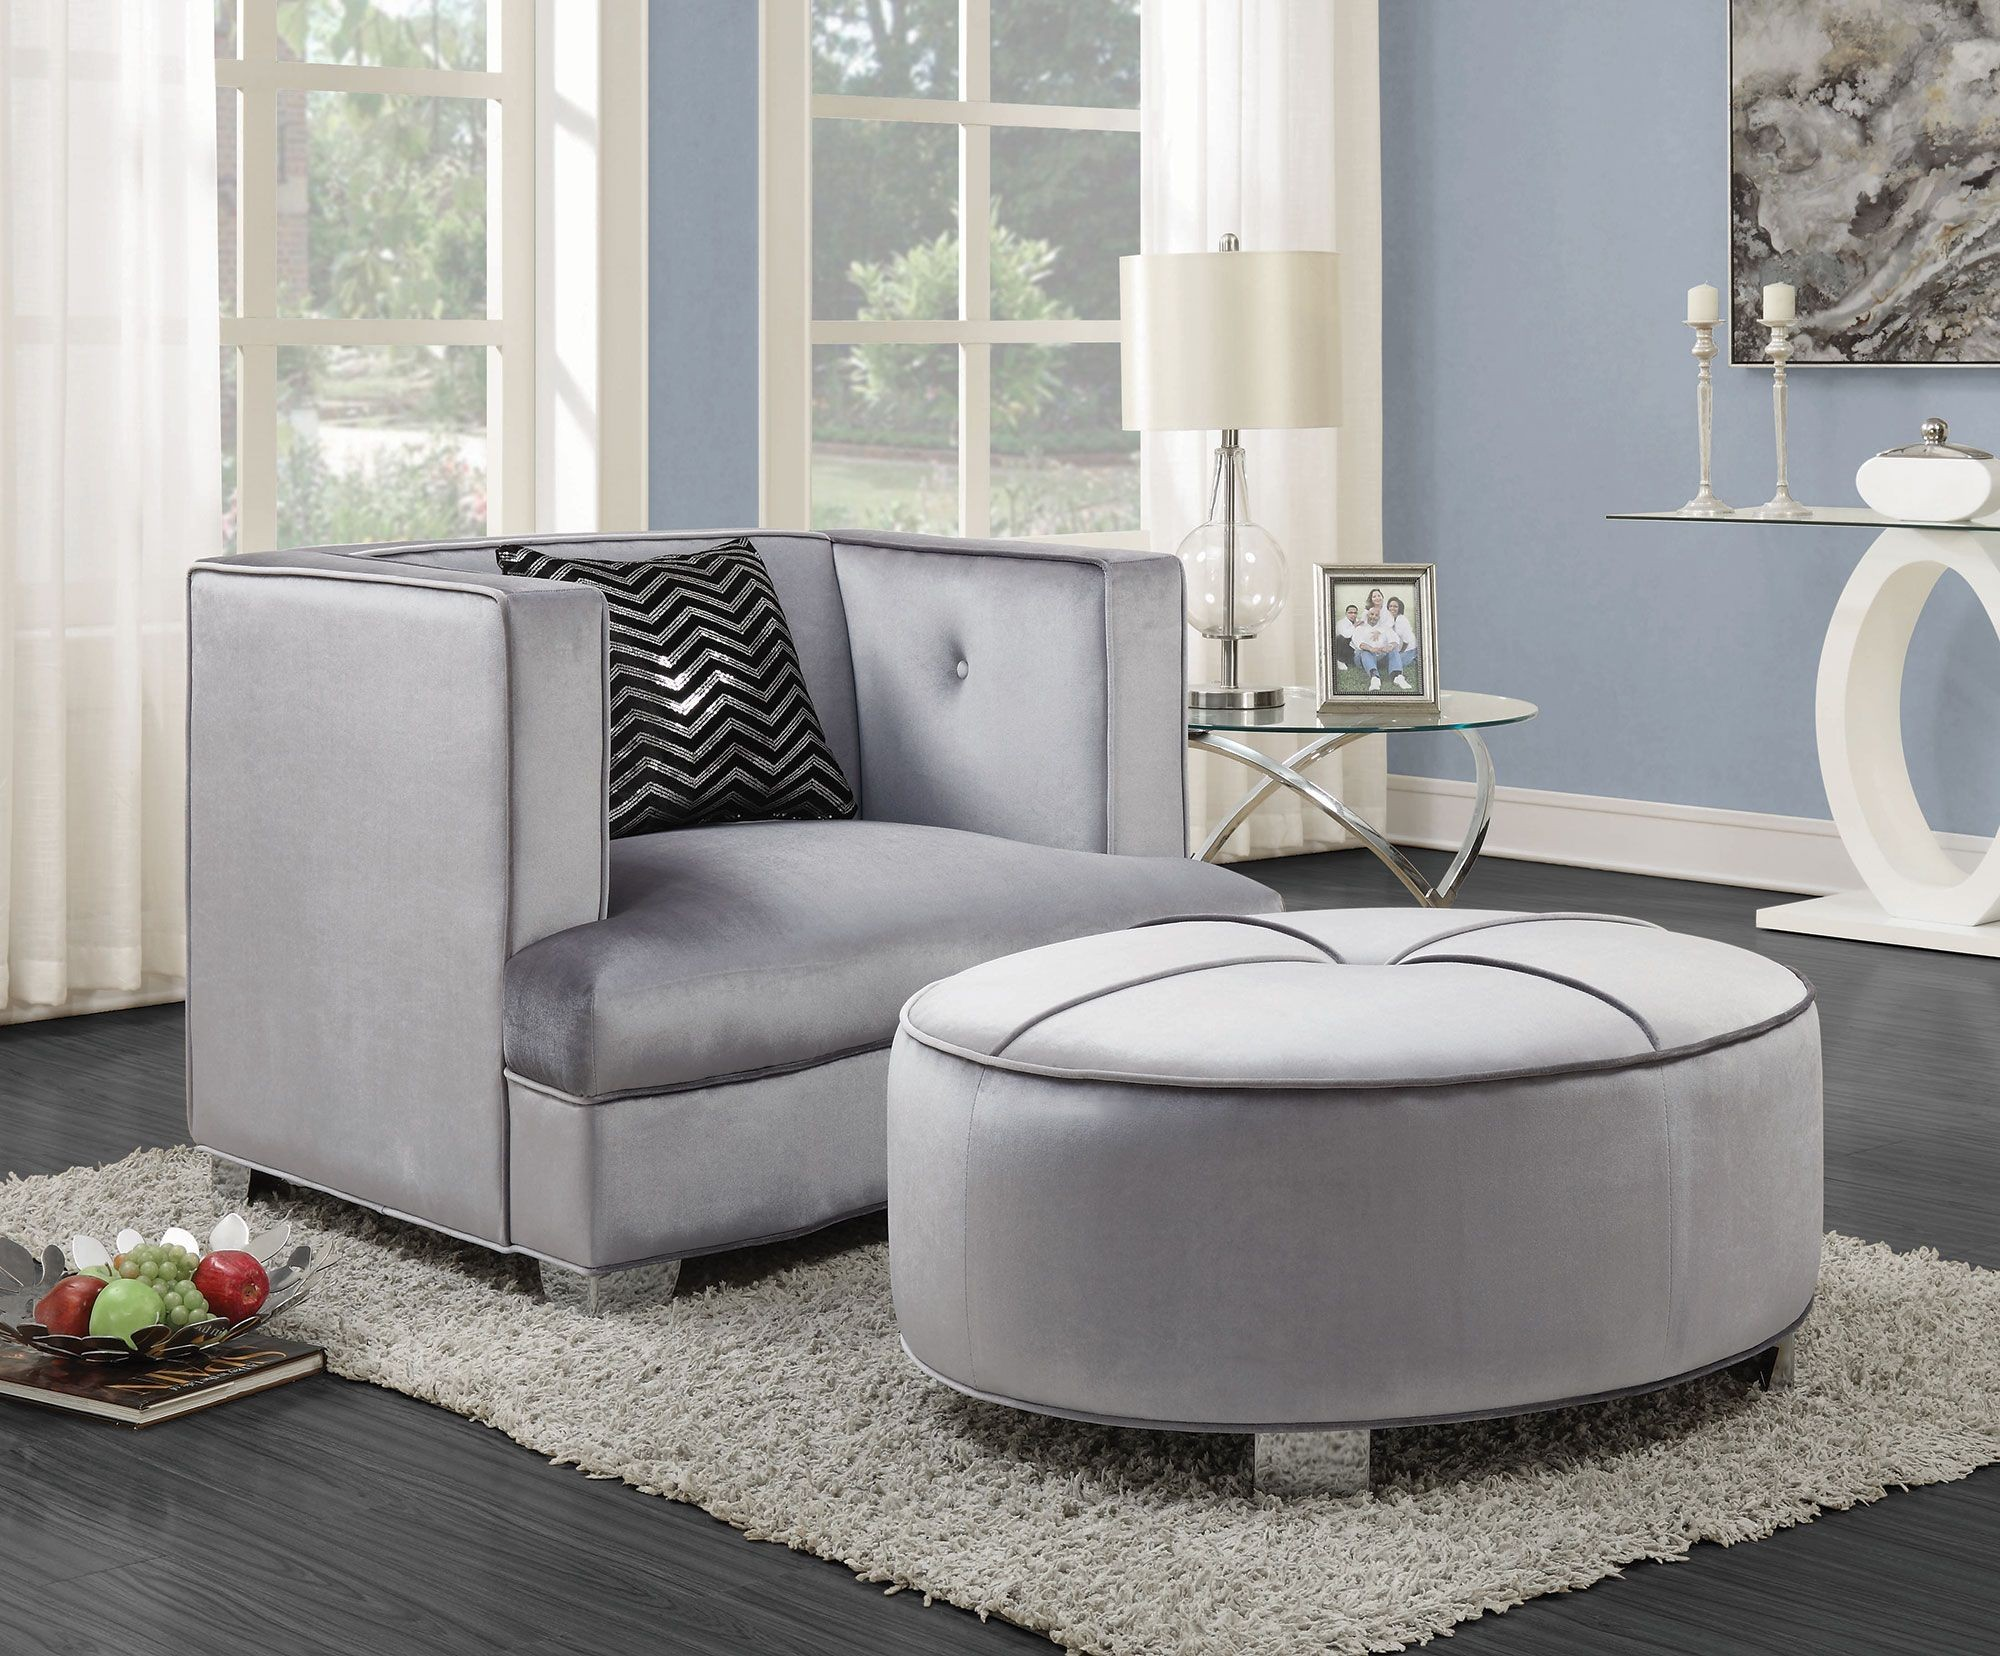 Caldwell Silver Living Room Set From Coaster 505881 Coleman Furniture